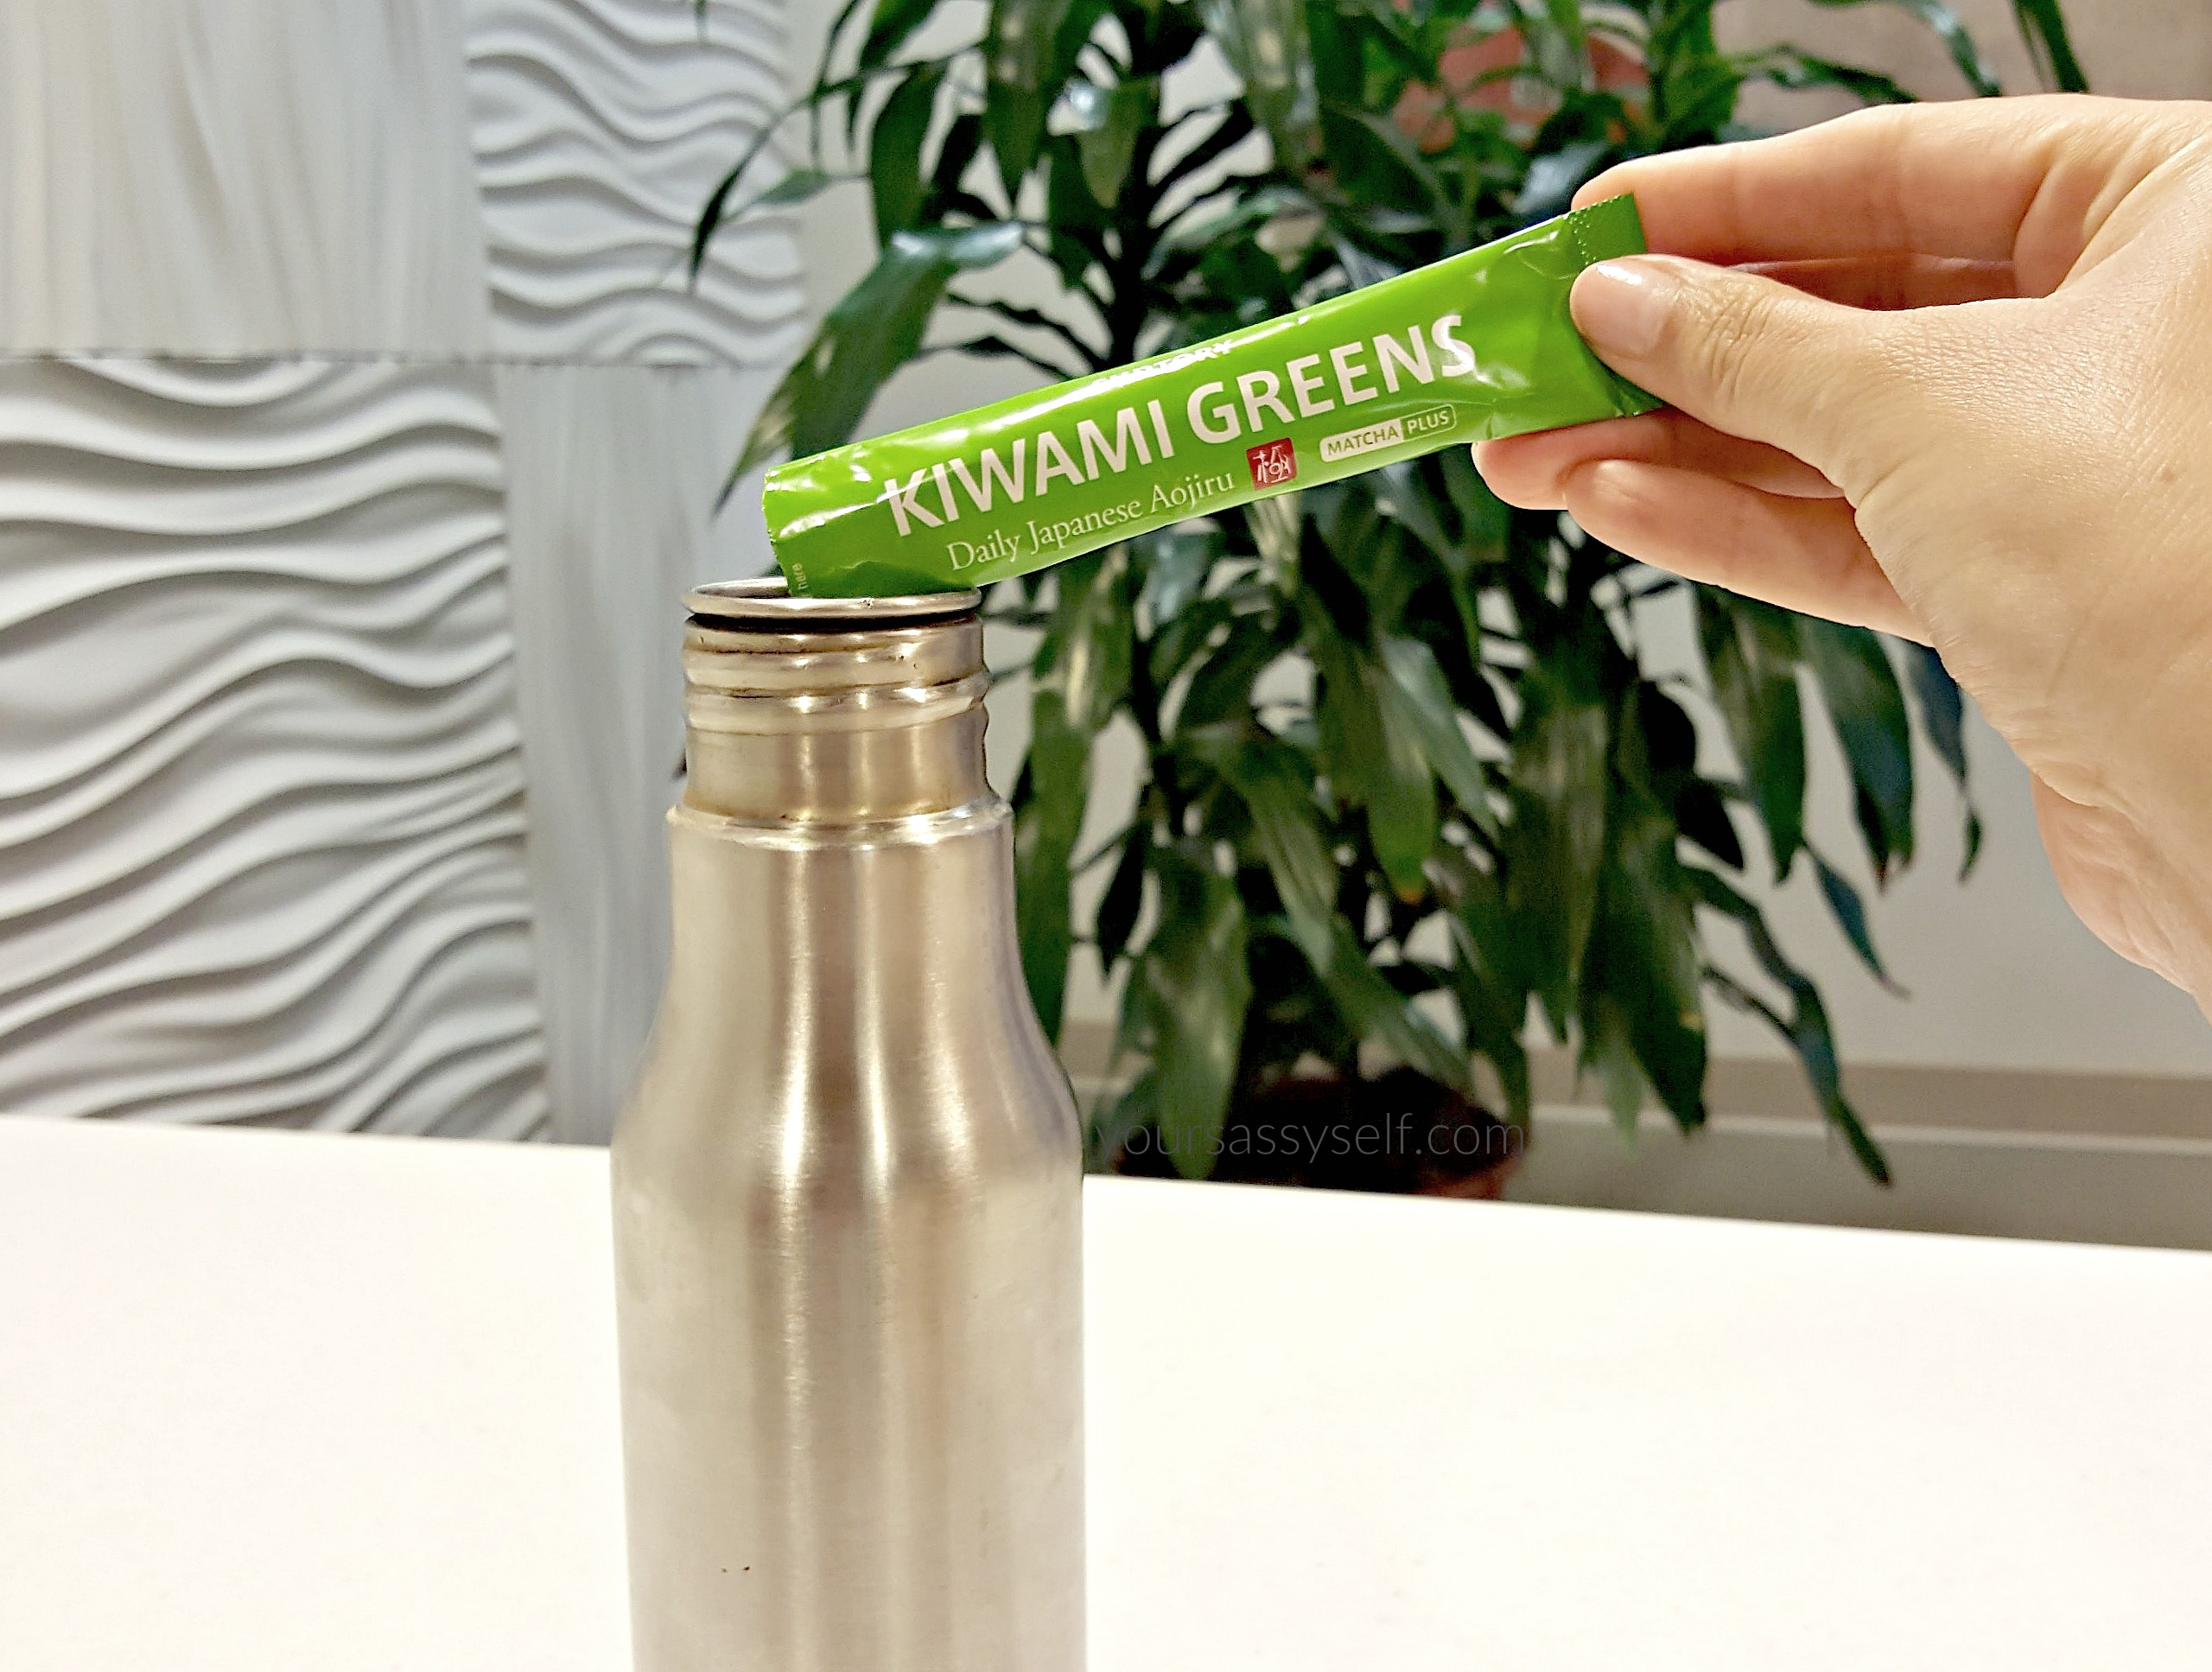 Kiwami Greens Drink Mix - yoursassyself.com